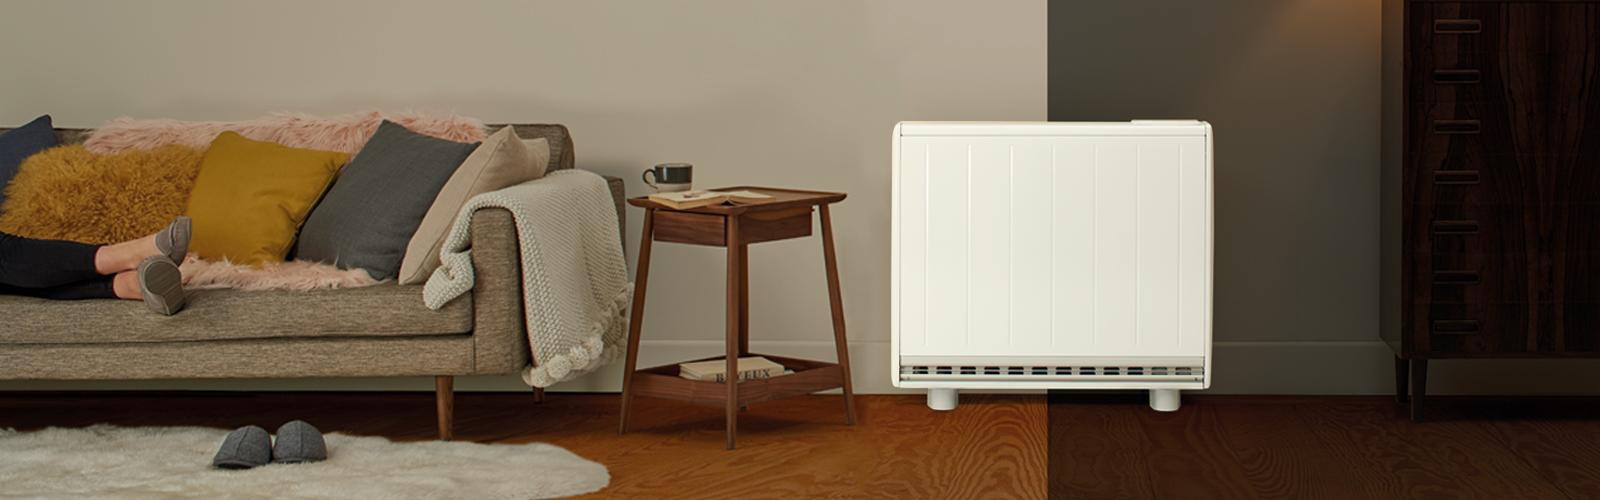 Installed electric heating Quantum off-peak heater from Dimplex